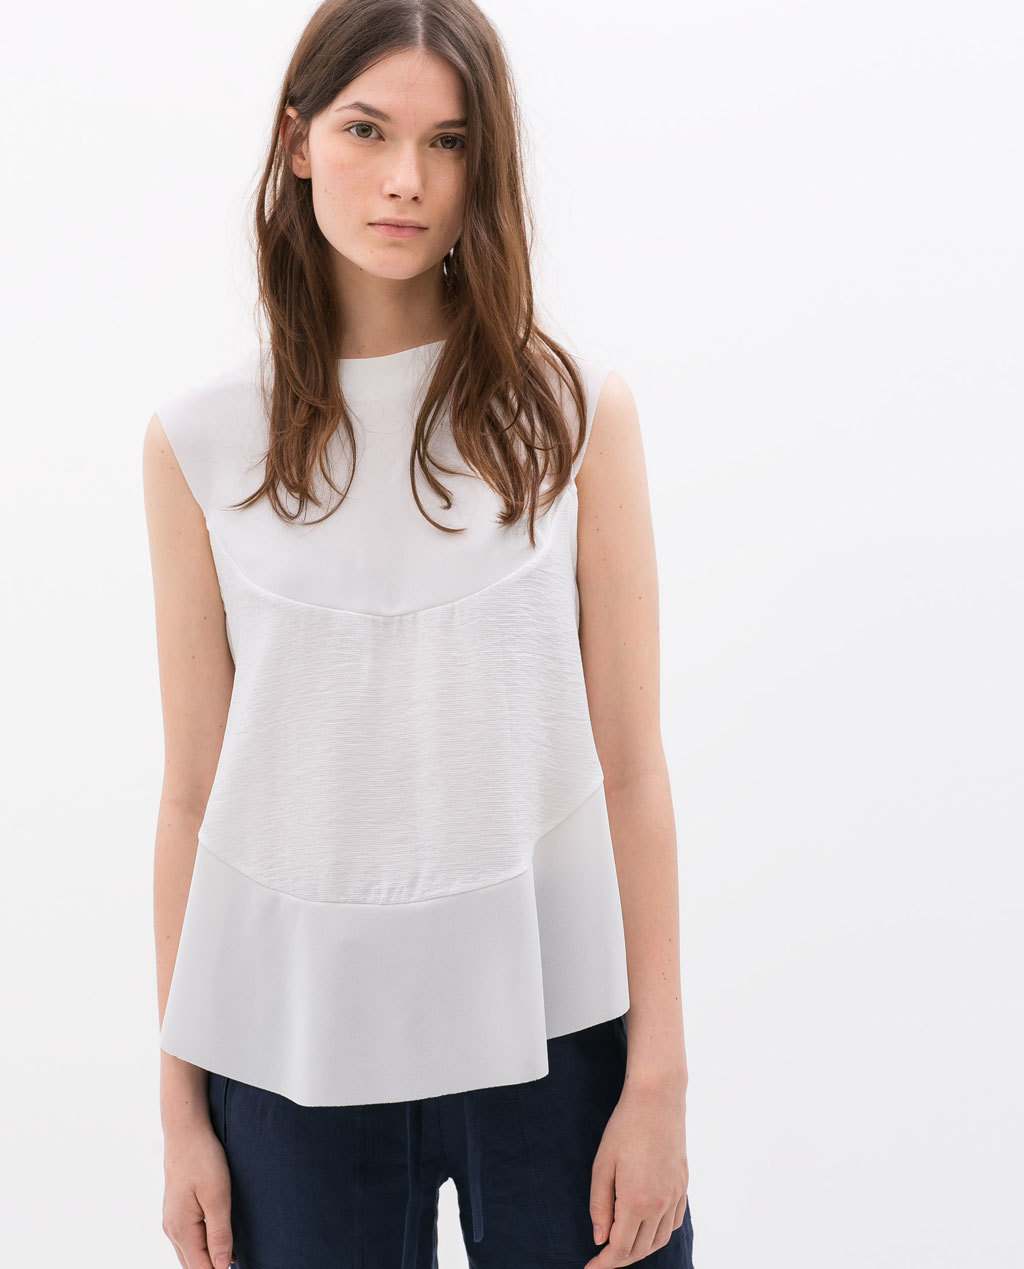 Combined Top With Slits - pattern: plain; sleeve style: sleeveless; predominant colour: ivory/cream; occasions: casual, creative work; length: standard; style: top; fibres: polyester/polyamide - 100%; fit: loose; neckline: crew; sleeve length: sleeveless; pattern type: fabric; texture group: other - light to midweight; season: s/s 2014